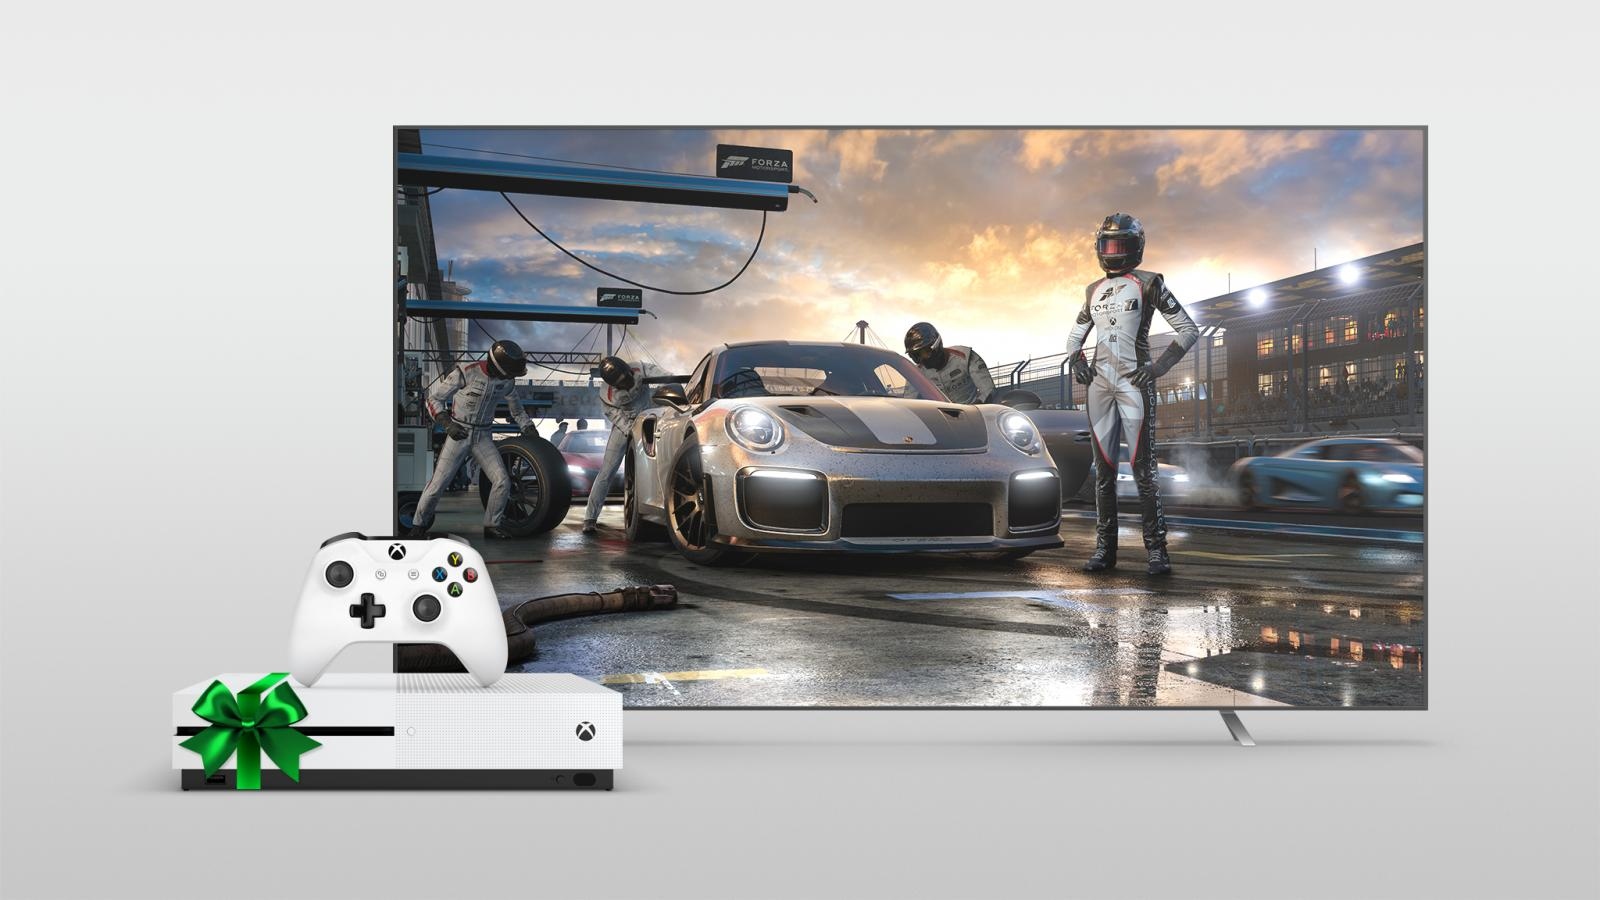 Xbox One S wrapped in a green bow next to a large TV with Forza shown on the screen